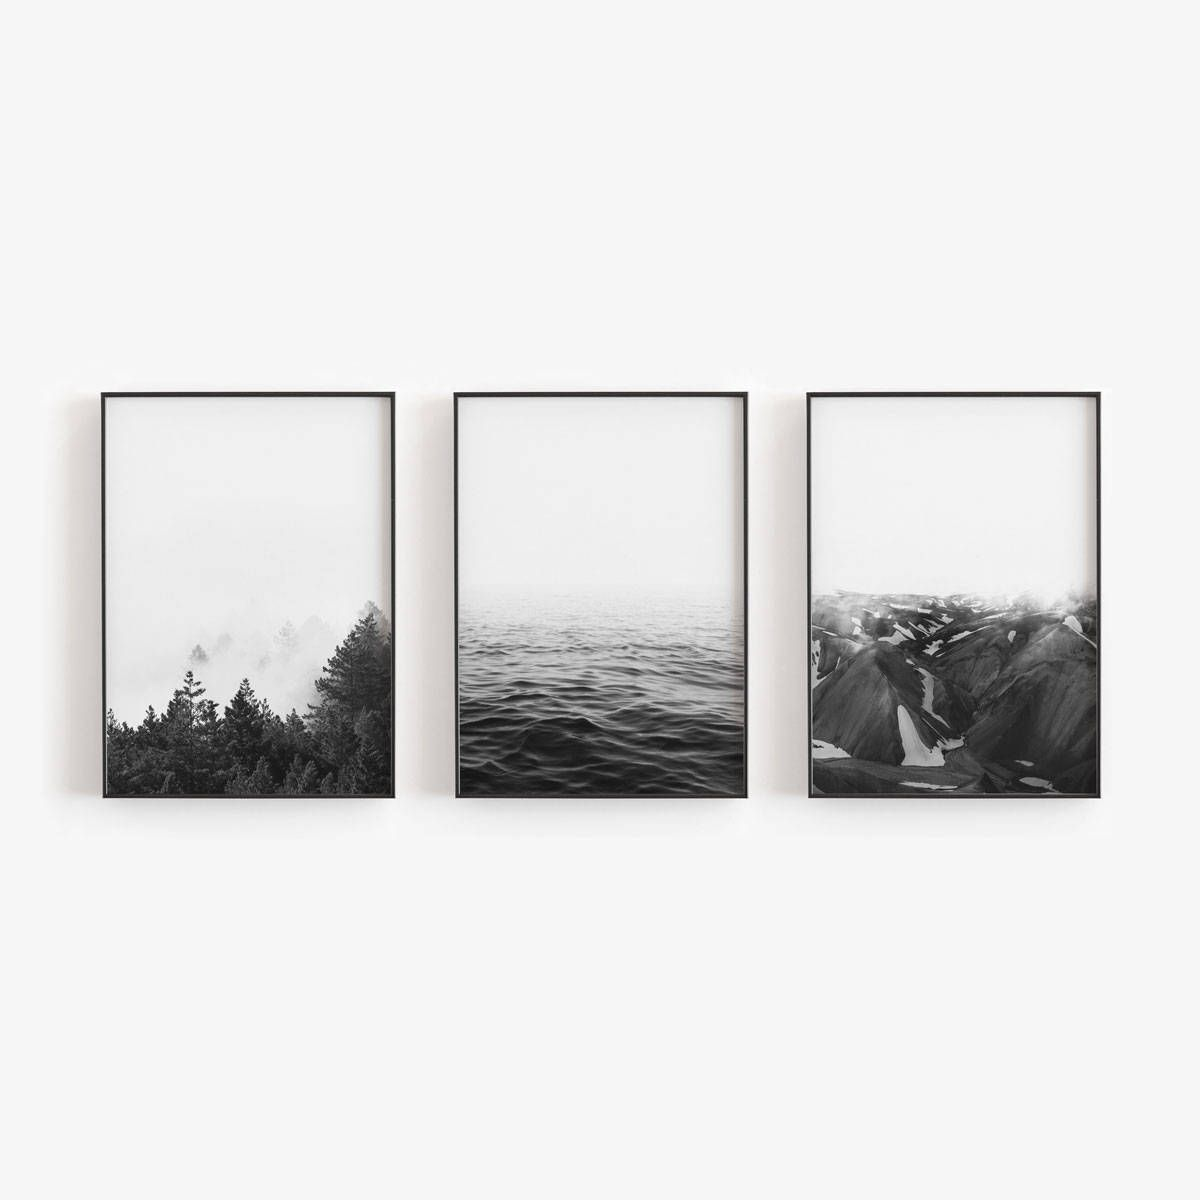 Black and White,Prints,Set of 3 Prints,Scandinavian Prints,Black and White Prints,Large Wall Art,Printable Art,Wall Art Prints,Nature Prints is part of Large Living Room Black - heartsincolors Thank you for visiting our shop